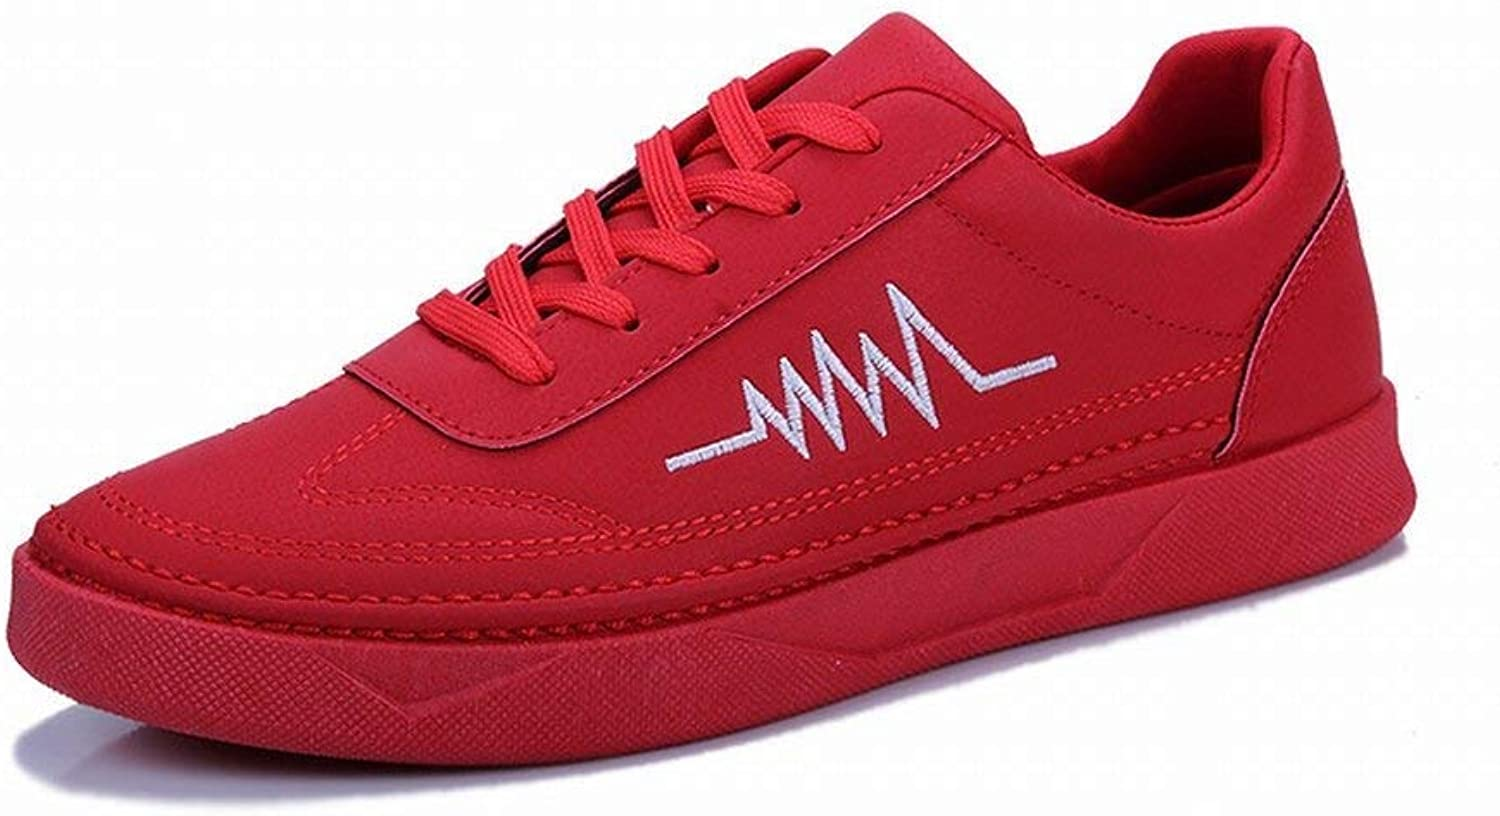 FuweiEncore Male Tide shoes Youth Lightning Pattern Black Casual shoes shoes (color   Red, Size   41)